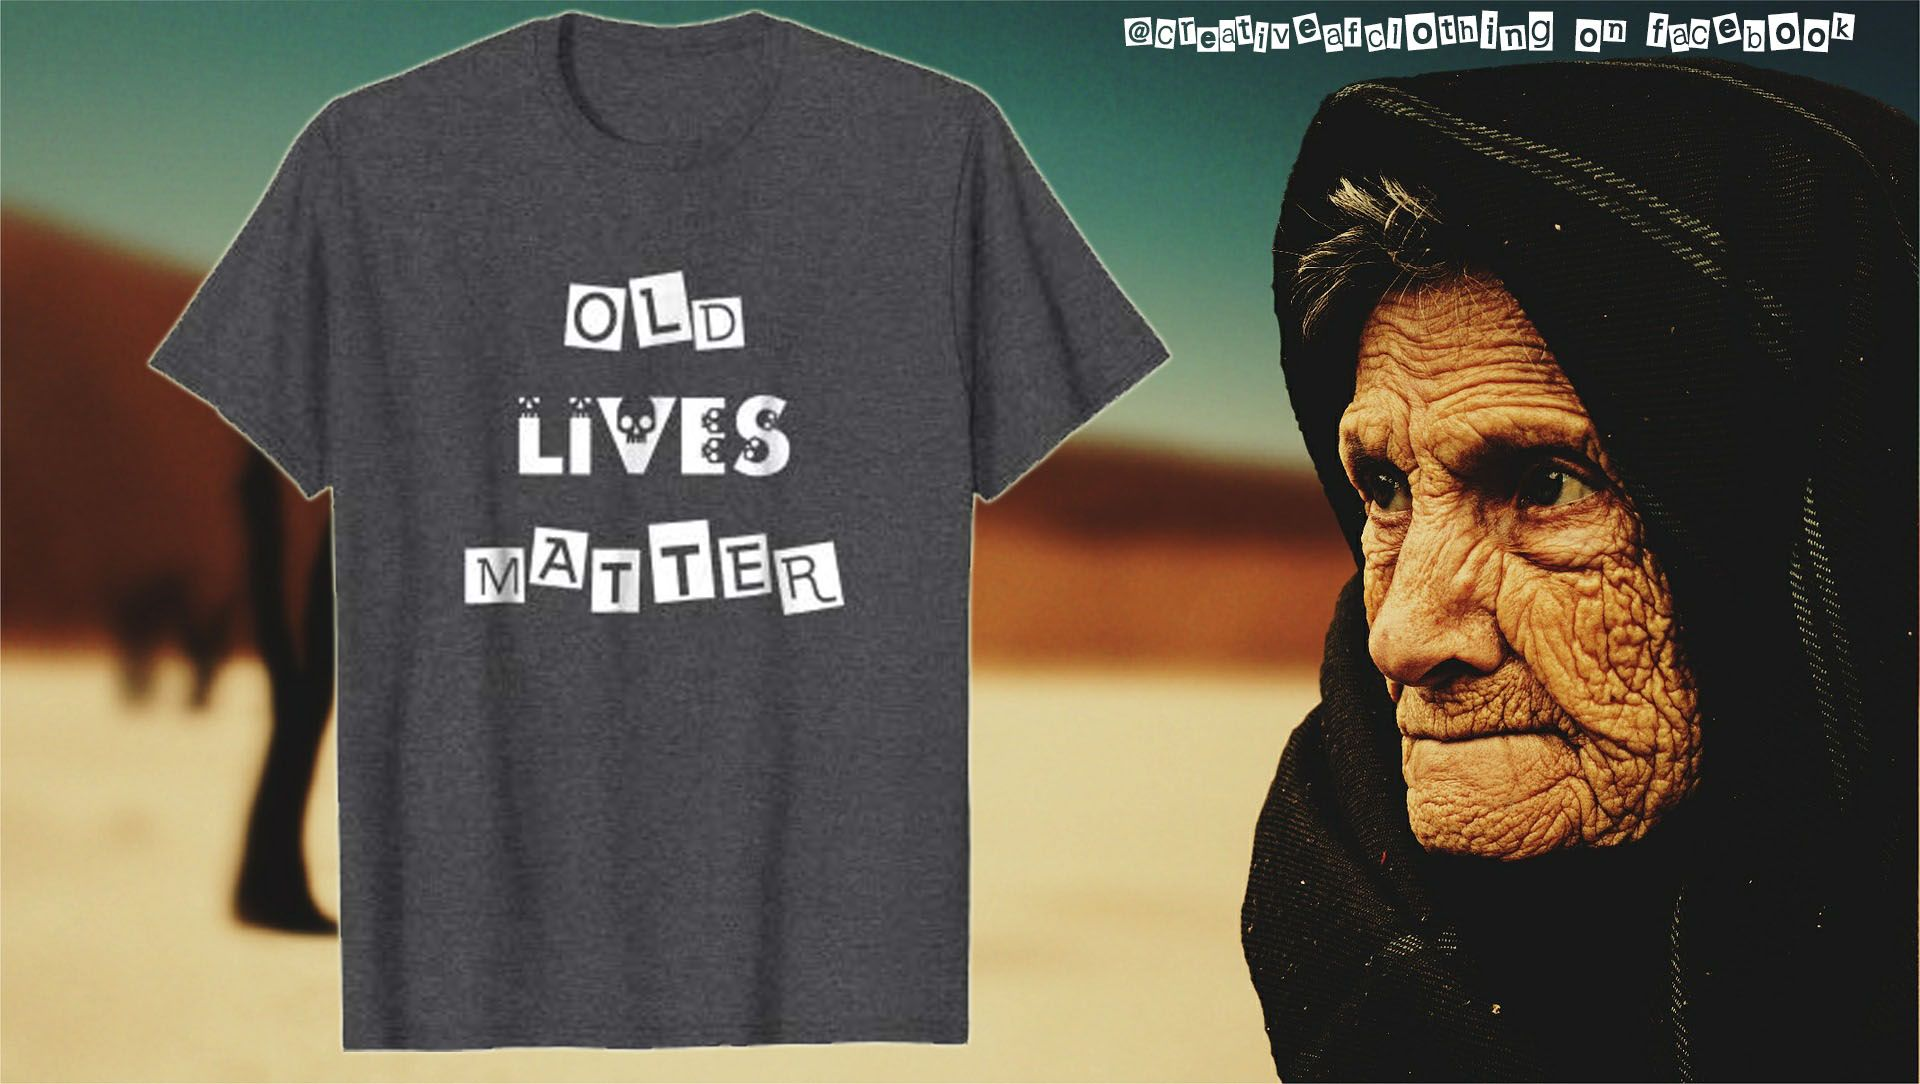 7c47de1f67 Old Lives Matter Funny Elderly Person Shirt. Perfect for grandma or grandpa  or any senior citizen. Great gift for people celebrating their 50th, 60th,  70th, ...